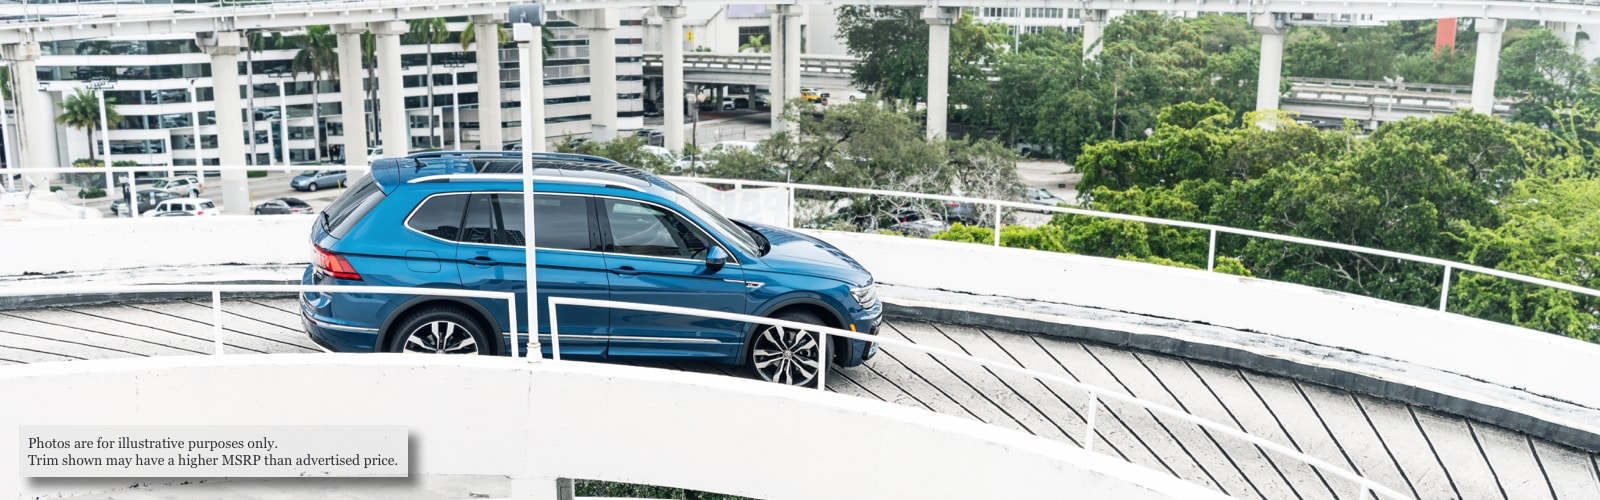 VW Tiguan Lease Deals NY Image